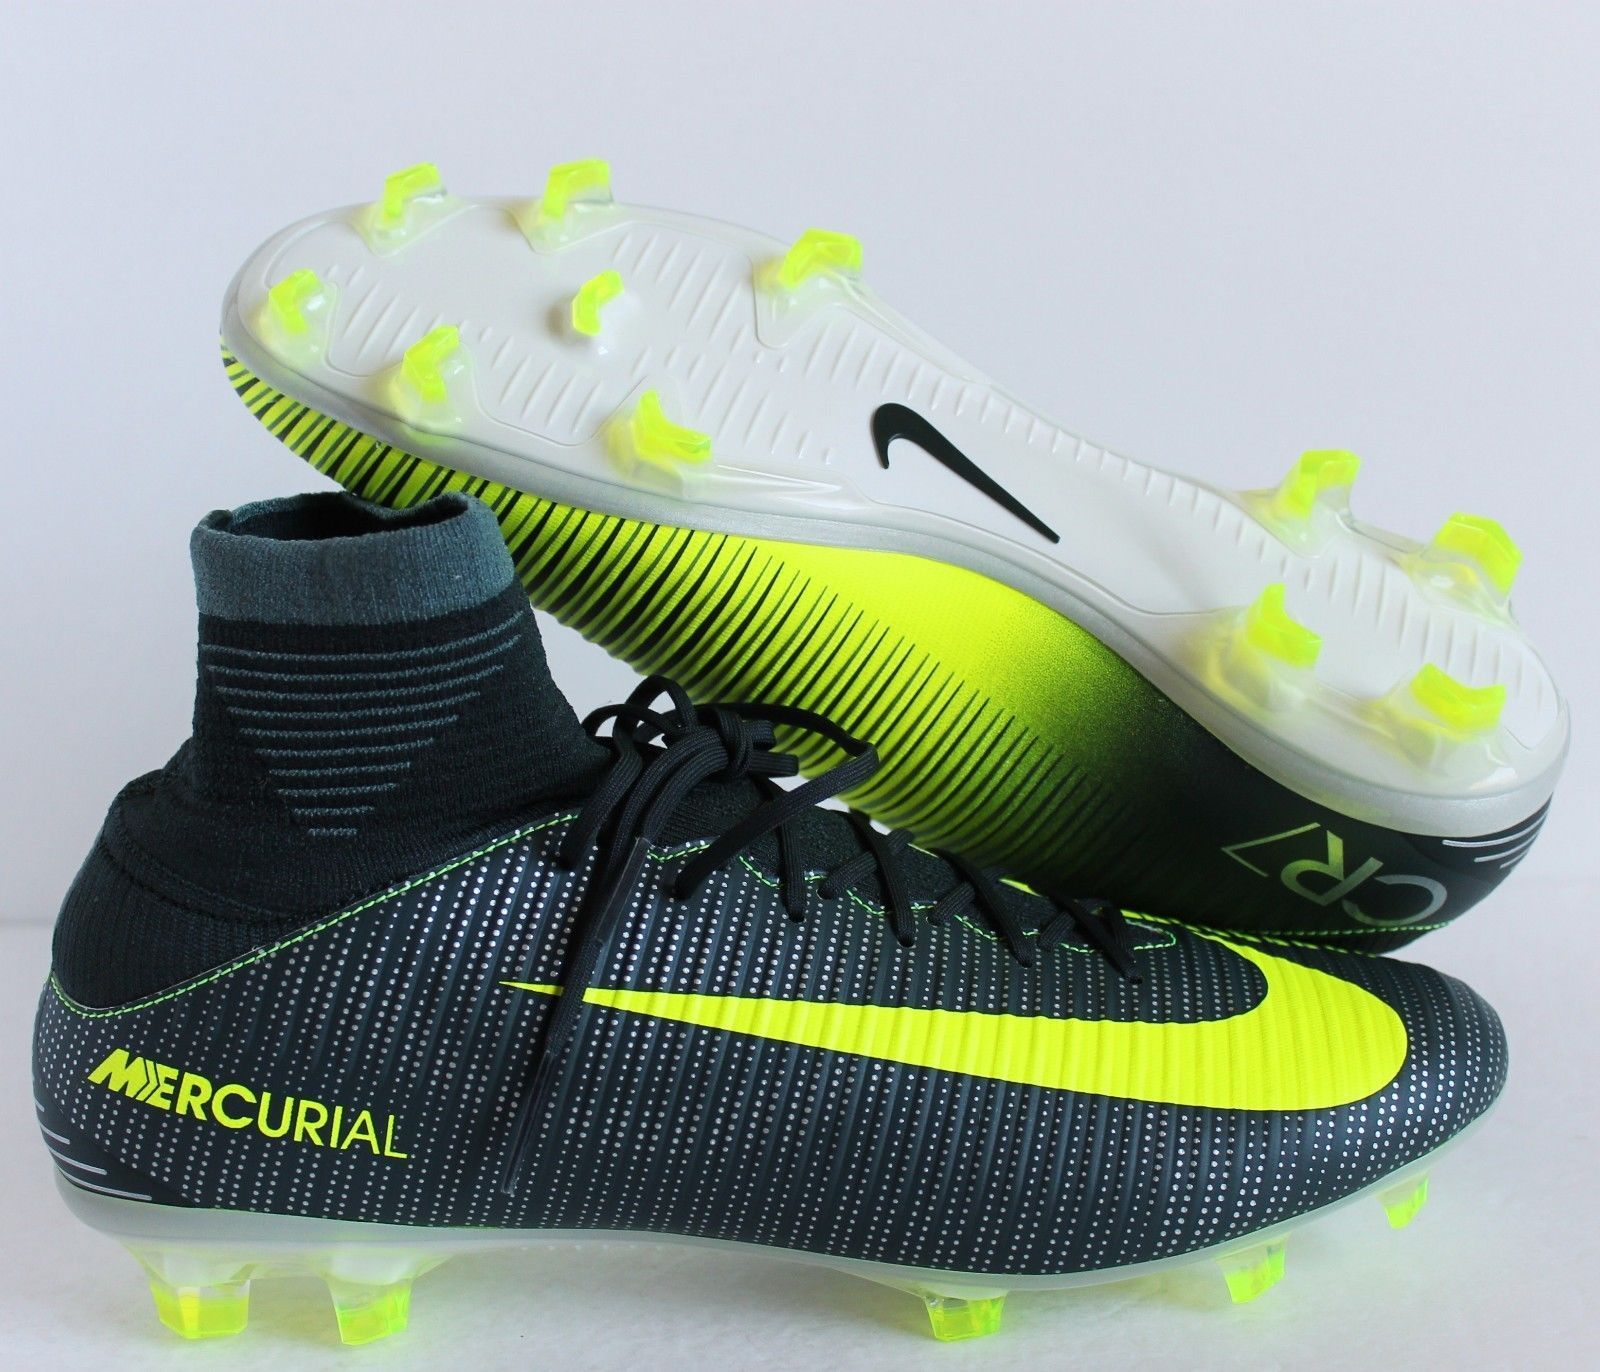 outlet store sale usa online new style NIKE MERCURIAL VELOCE III DF CR7 FG SOCCER CLEATS SZ 9 ...